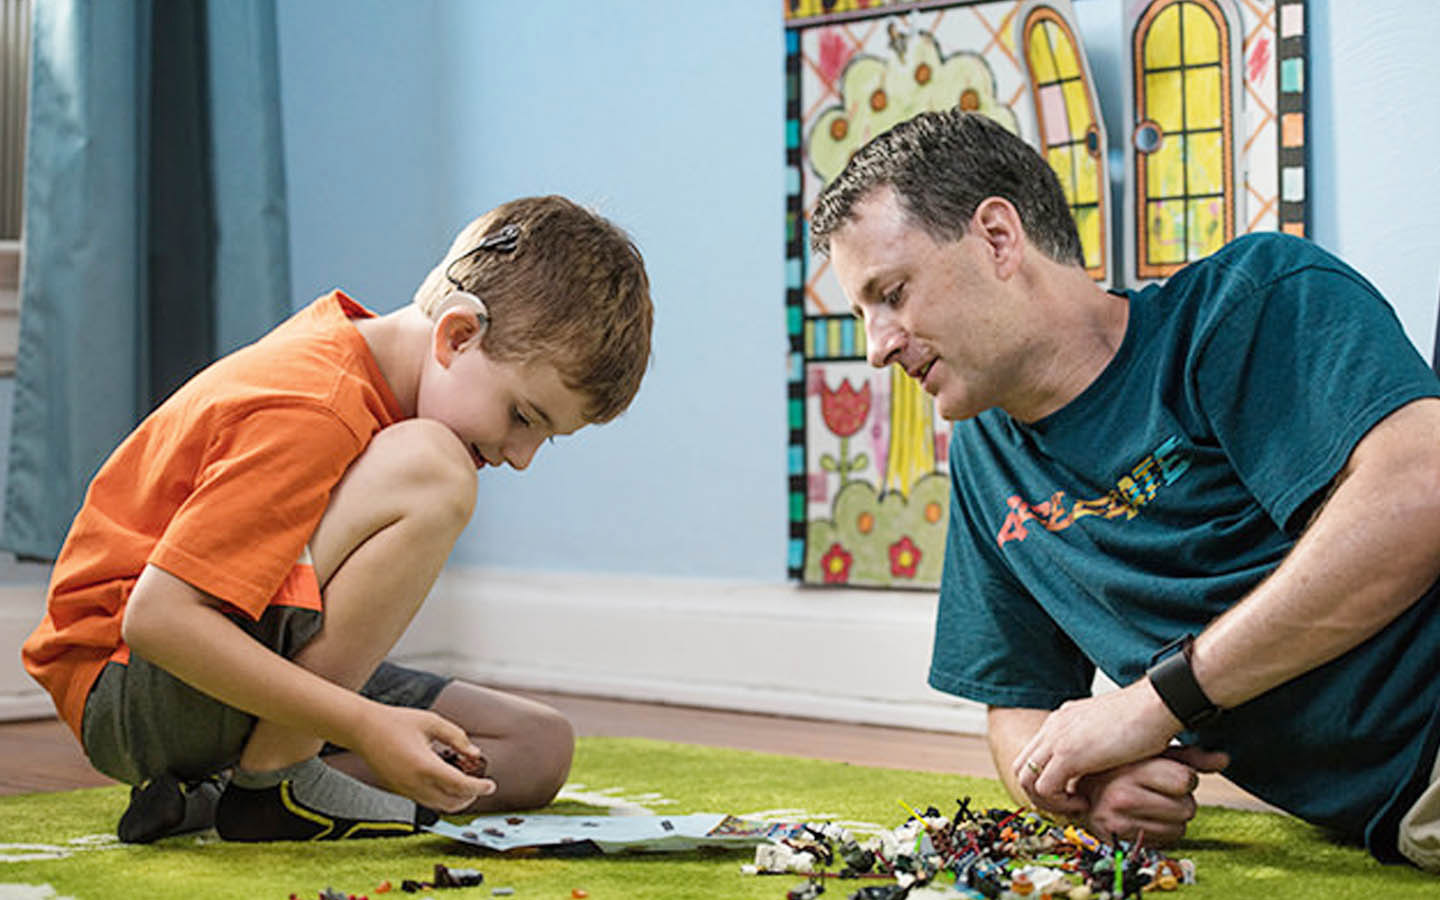 A boy with a Cochlear implant plays on the floor as his dad watches on